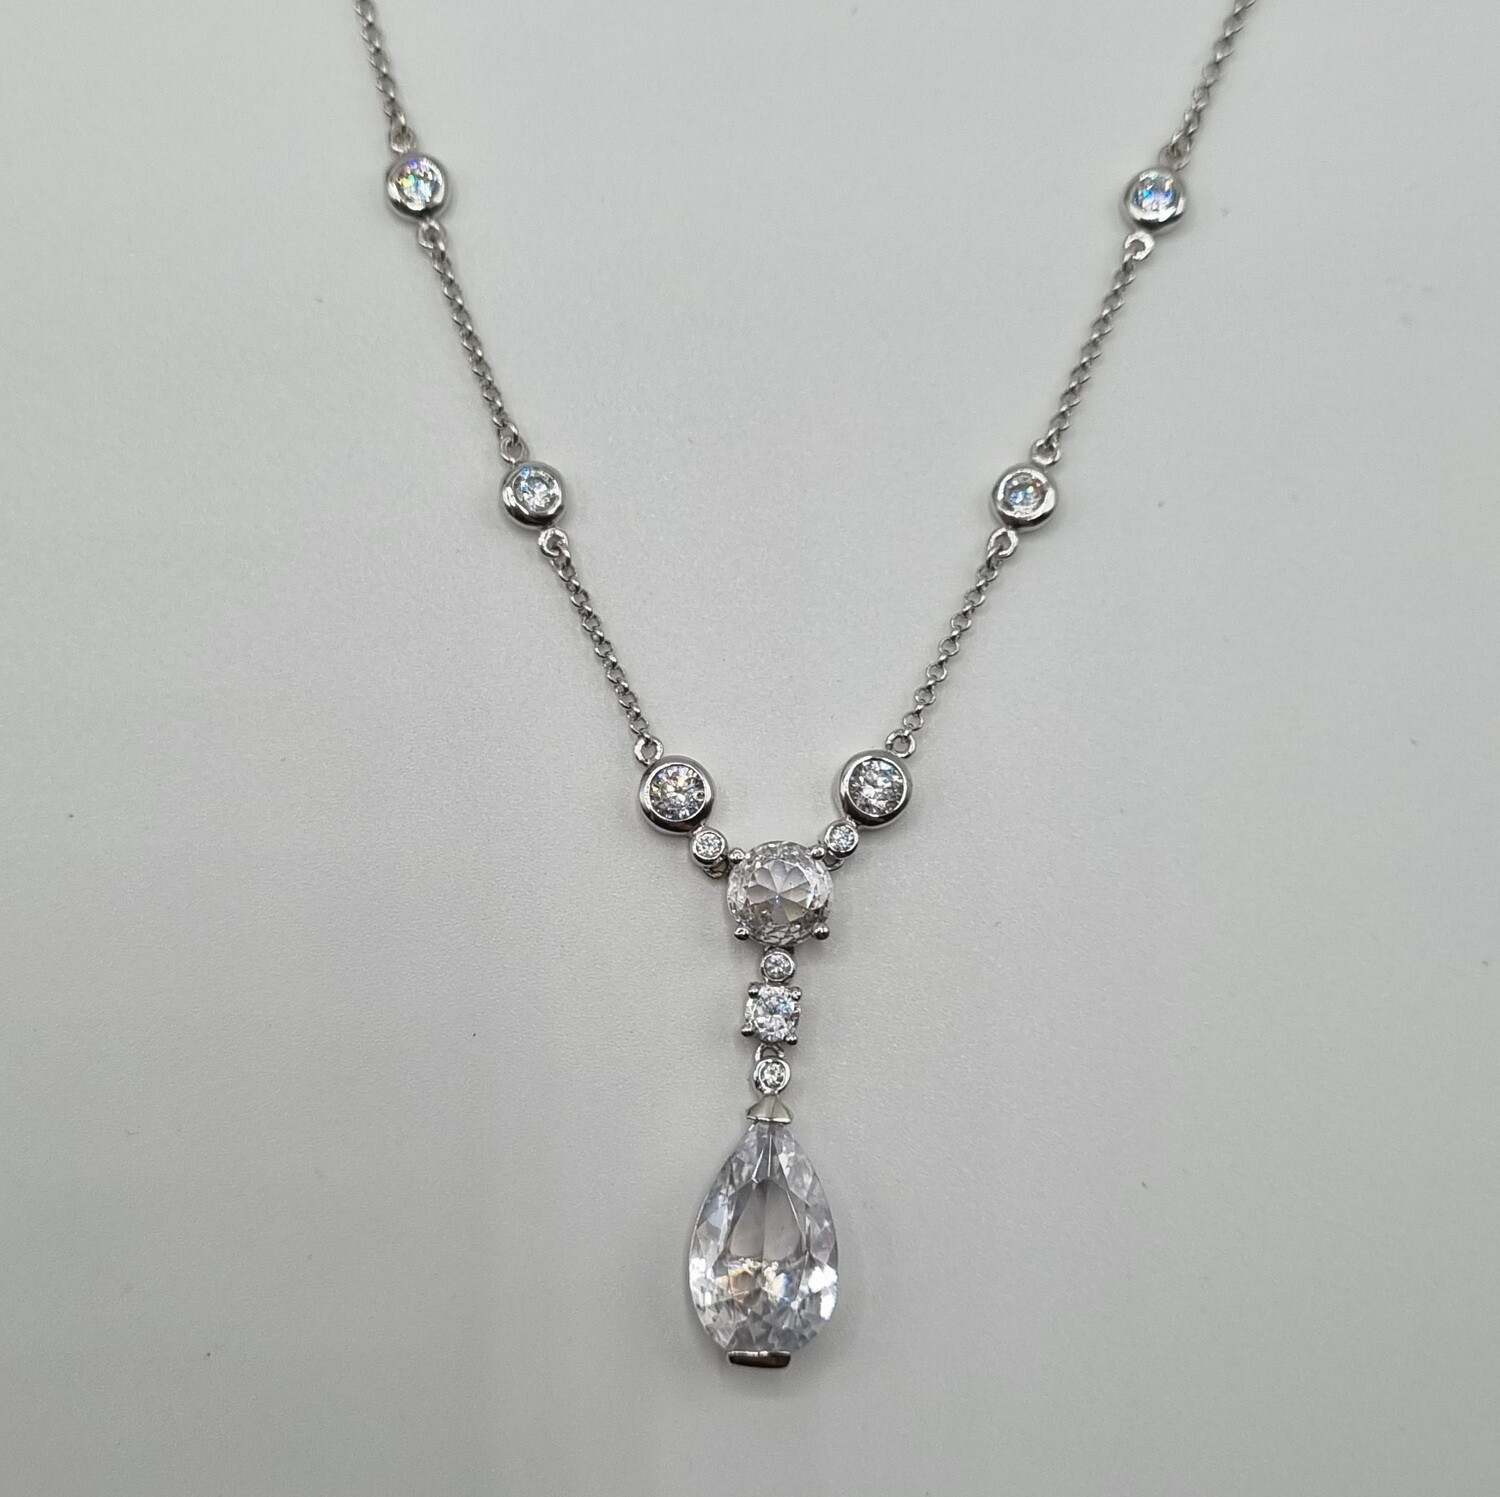 Y-Collier Silber